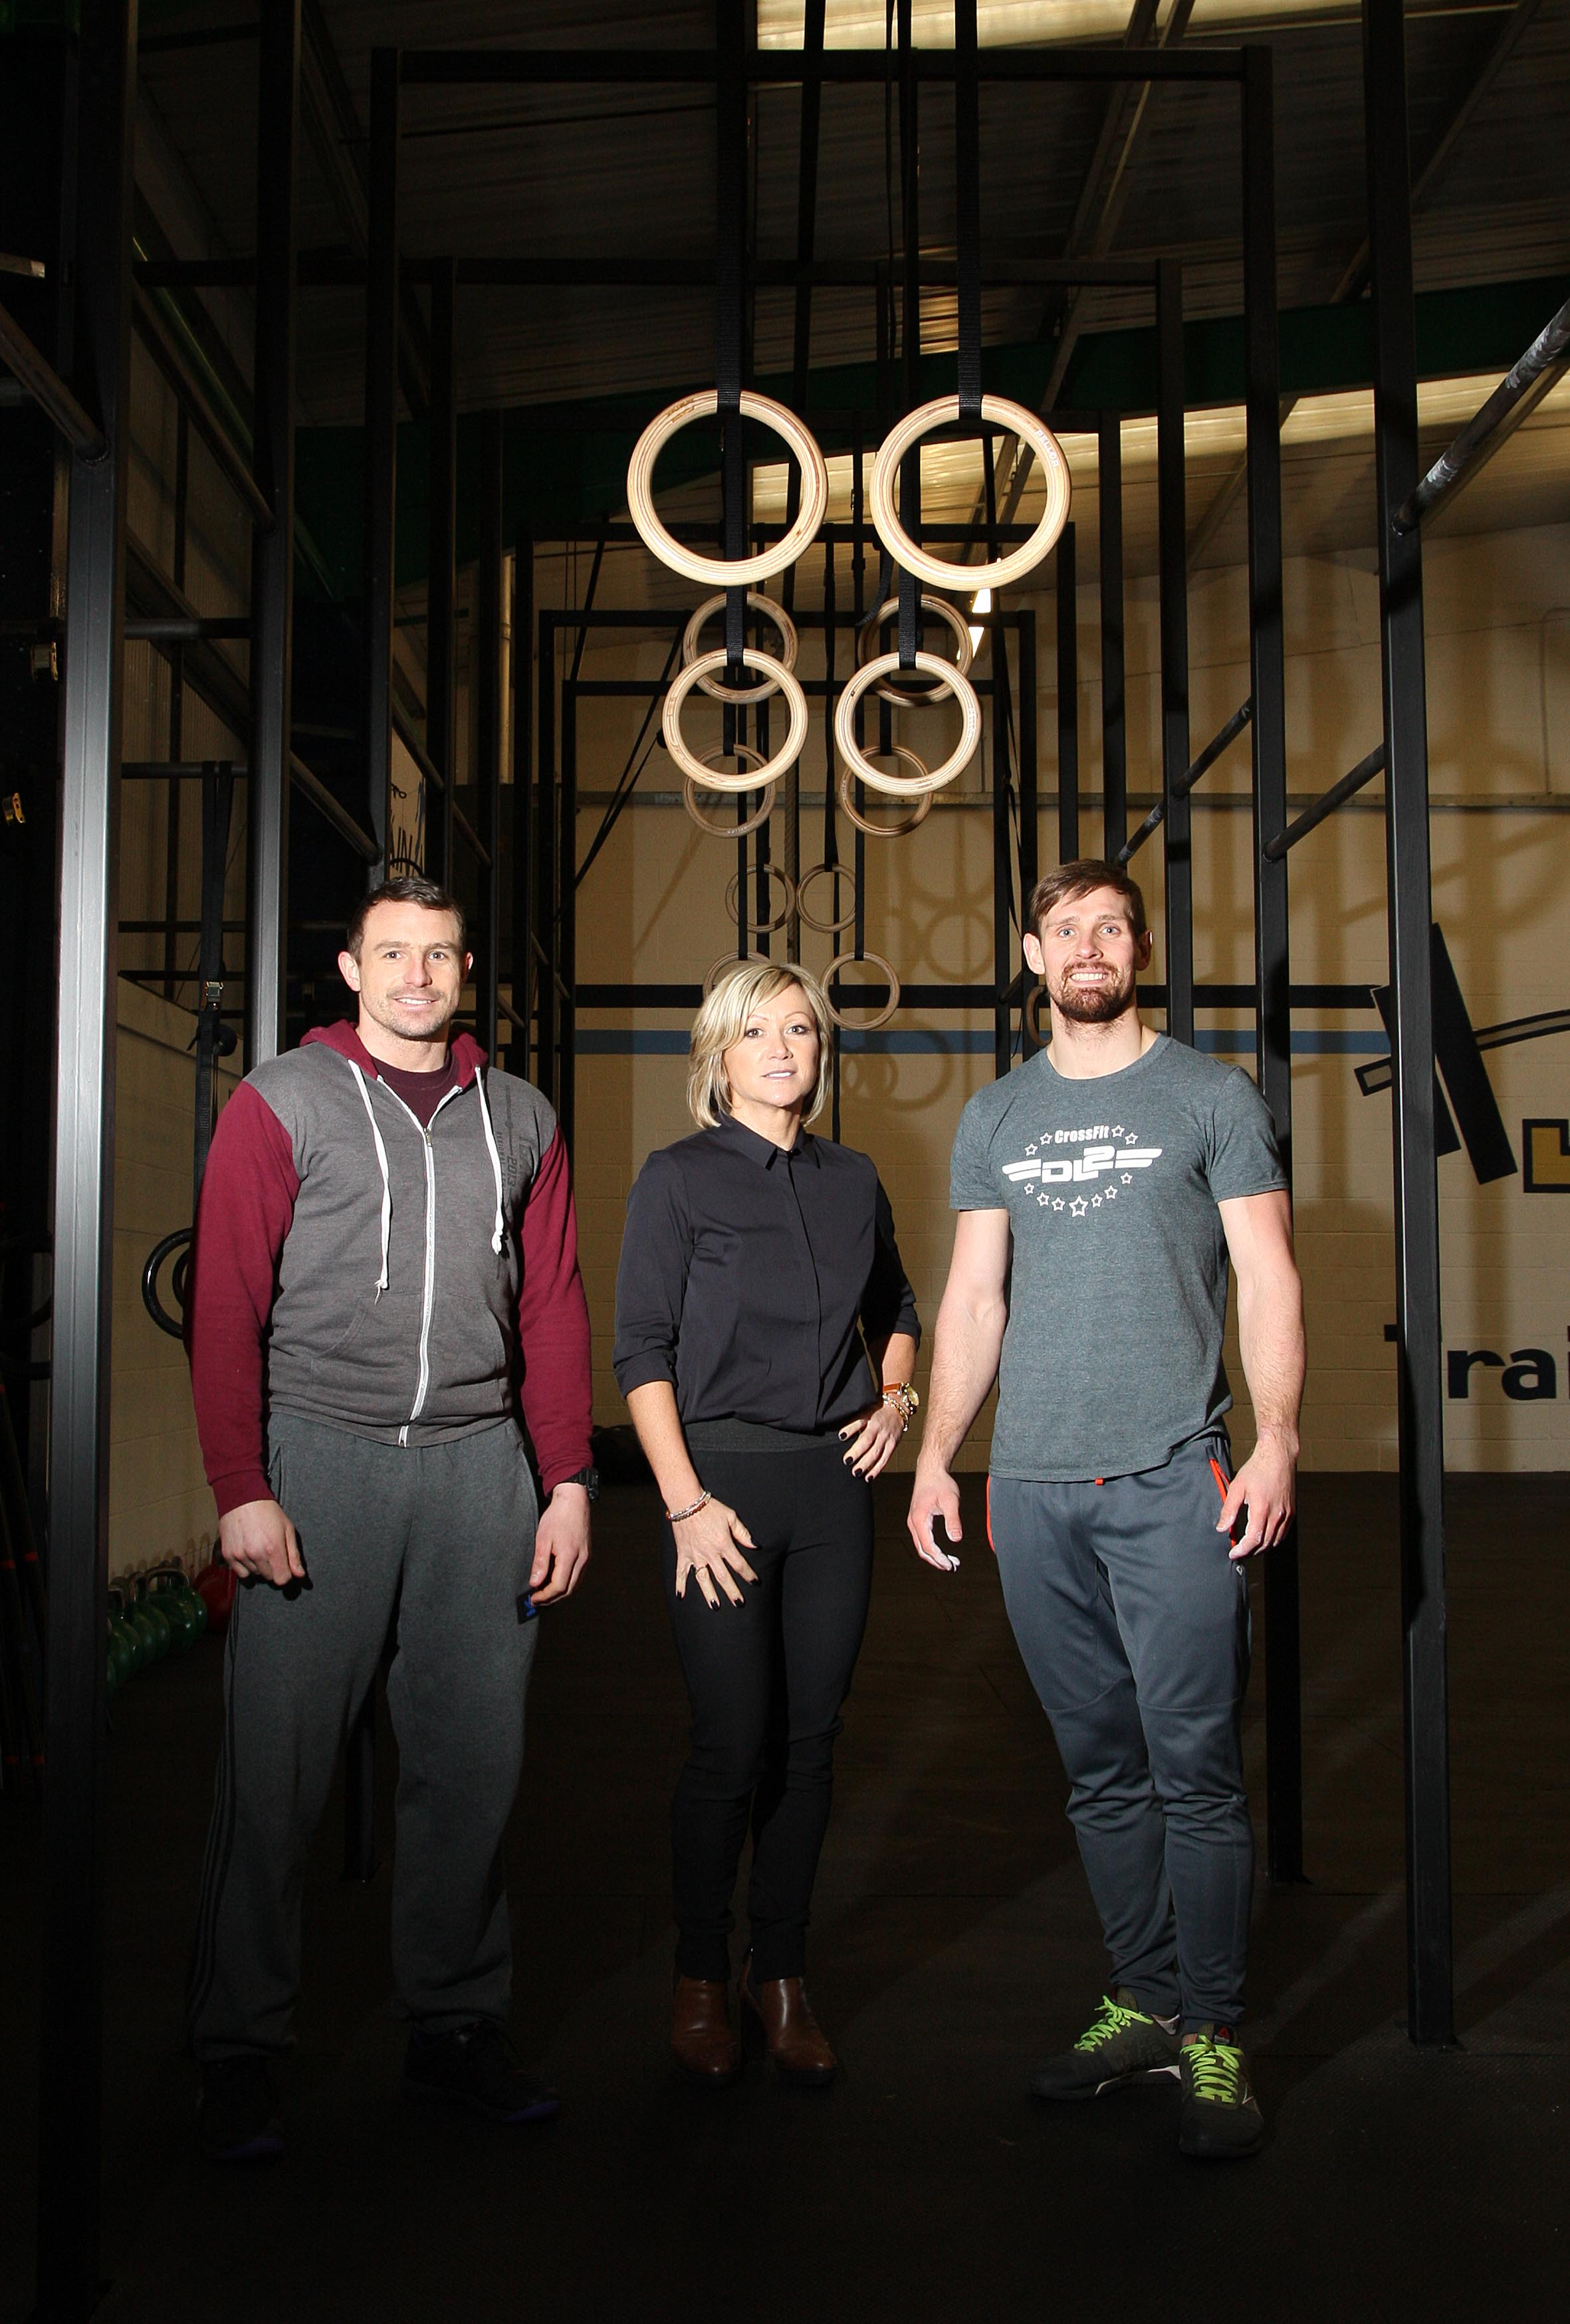 Dragon Duncan's ex-wife opens new gym near Bannatyne health club